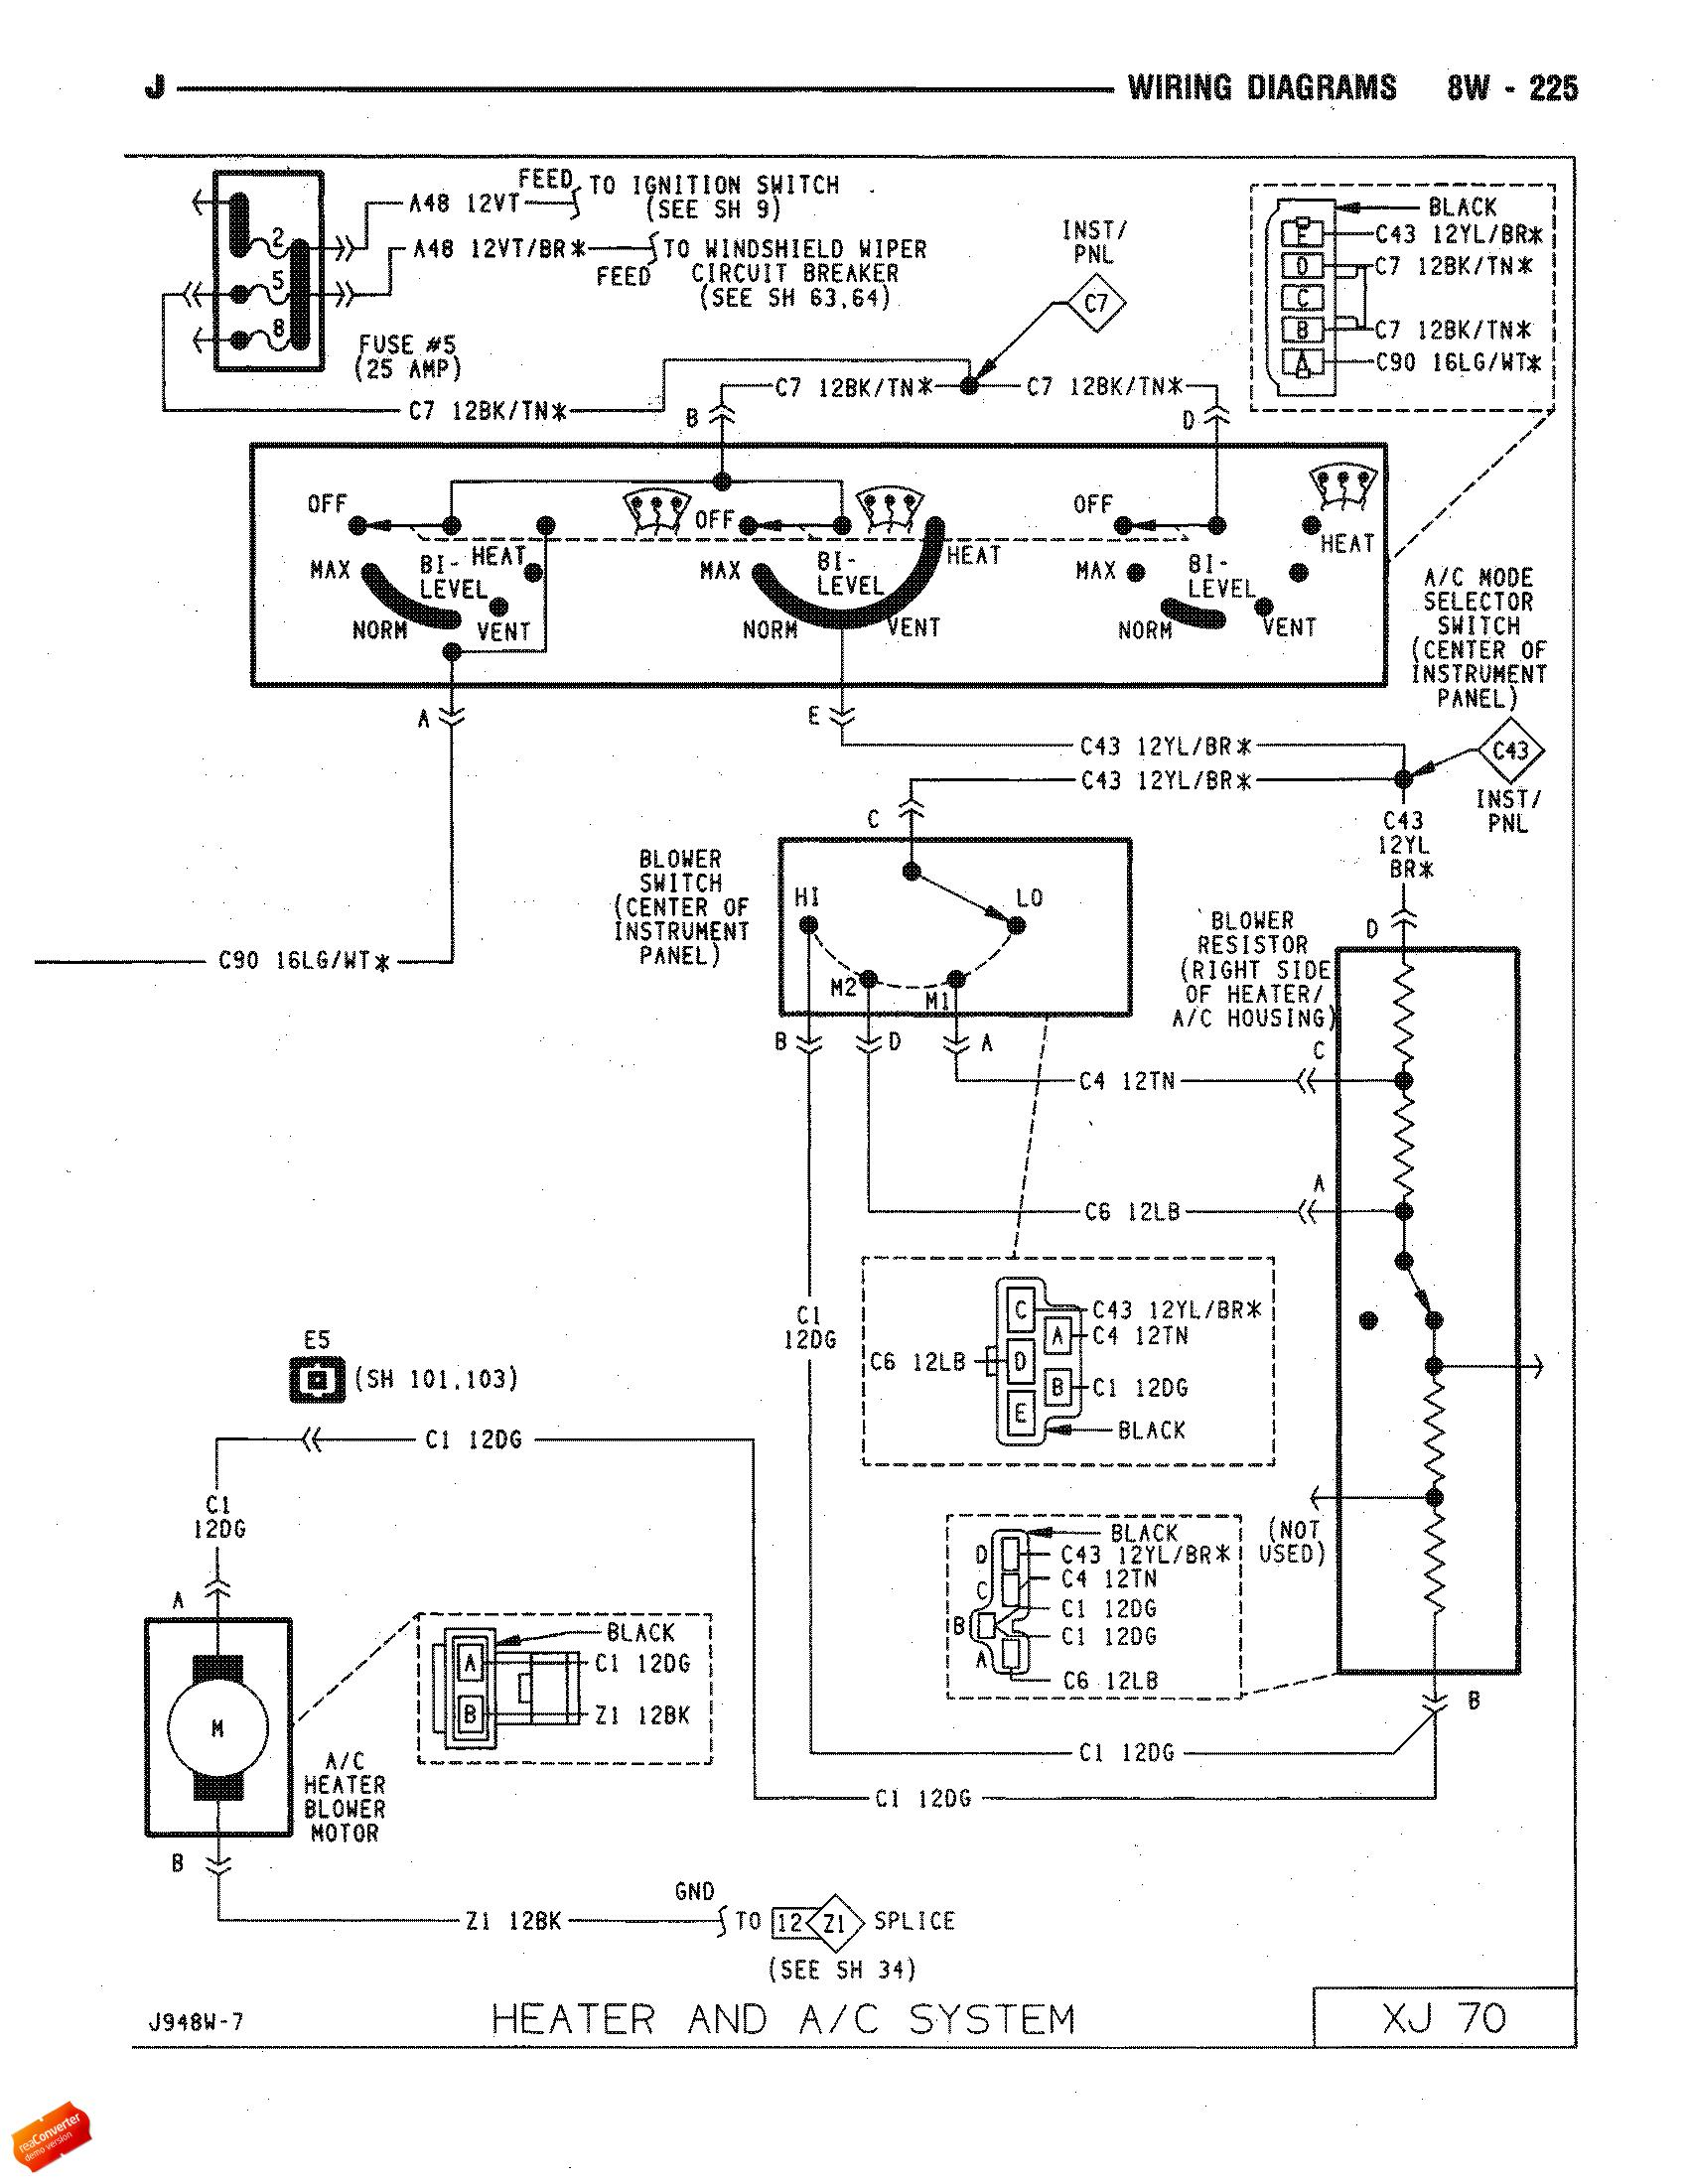 hight resolution of 1996 jeep cherokee heater diagram wiring diagram sample1996 jeep grand cherokee blower motor wiring diagram wiring